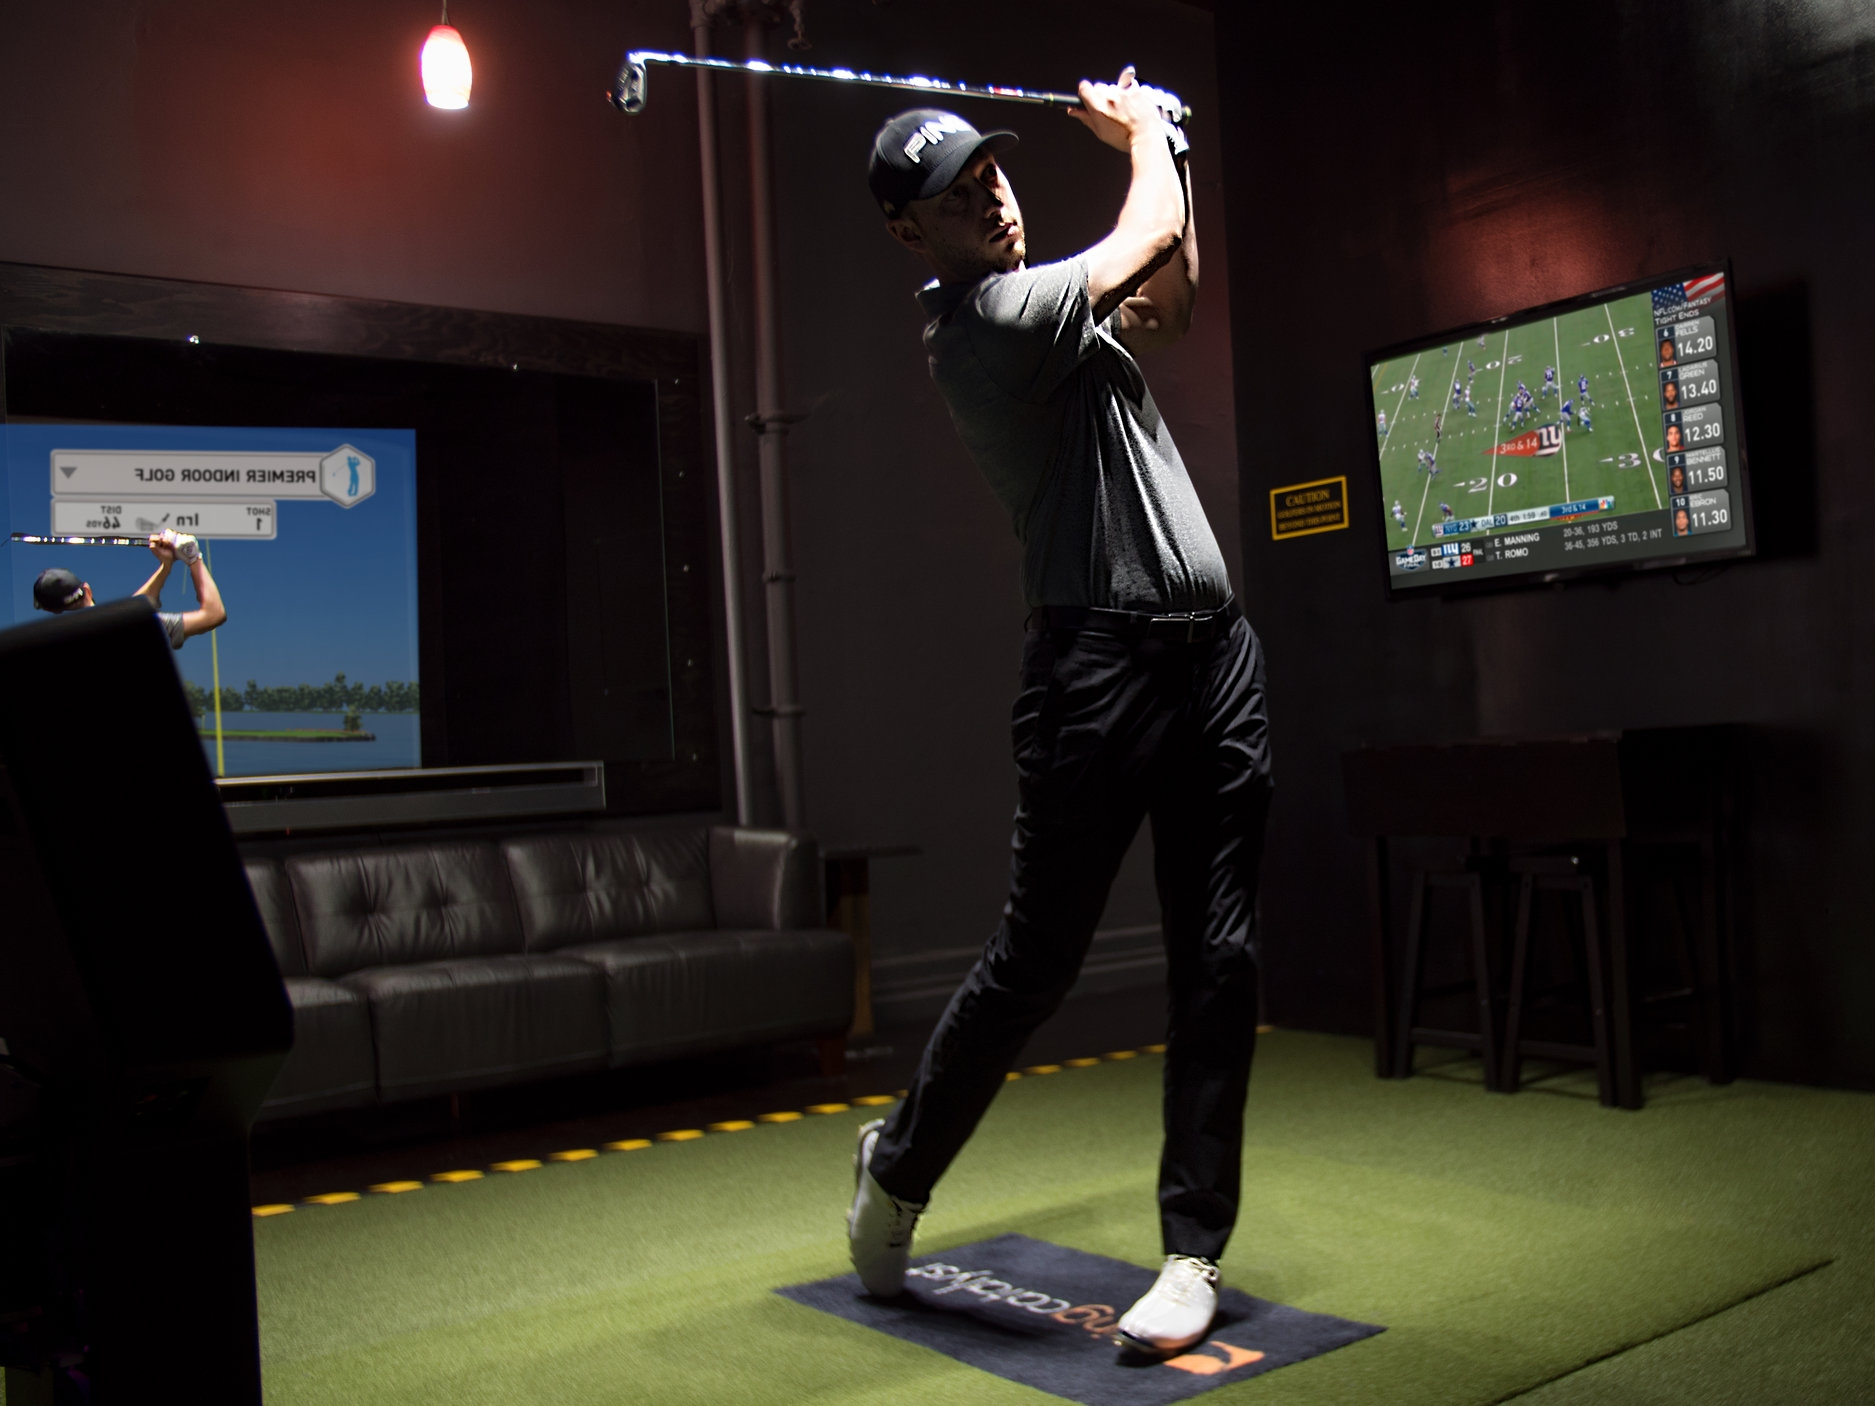 PRACTICE & PLAY - Work on your game on the driving range, play world famous courses from around the world, or challenge your friends to a skills competition. The most accurate and true-to-life simulator technology available. Our simulator bays are available to rent for up to 4 people per room with no per person charge.